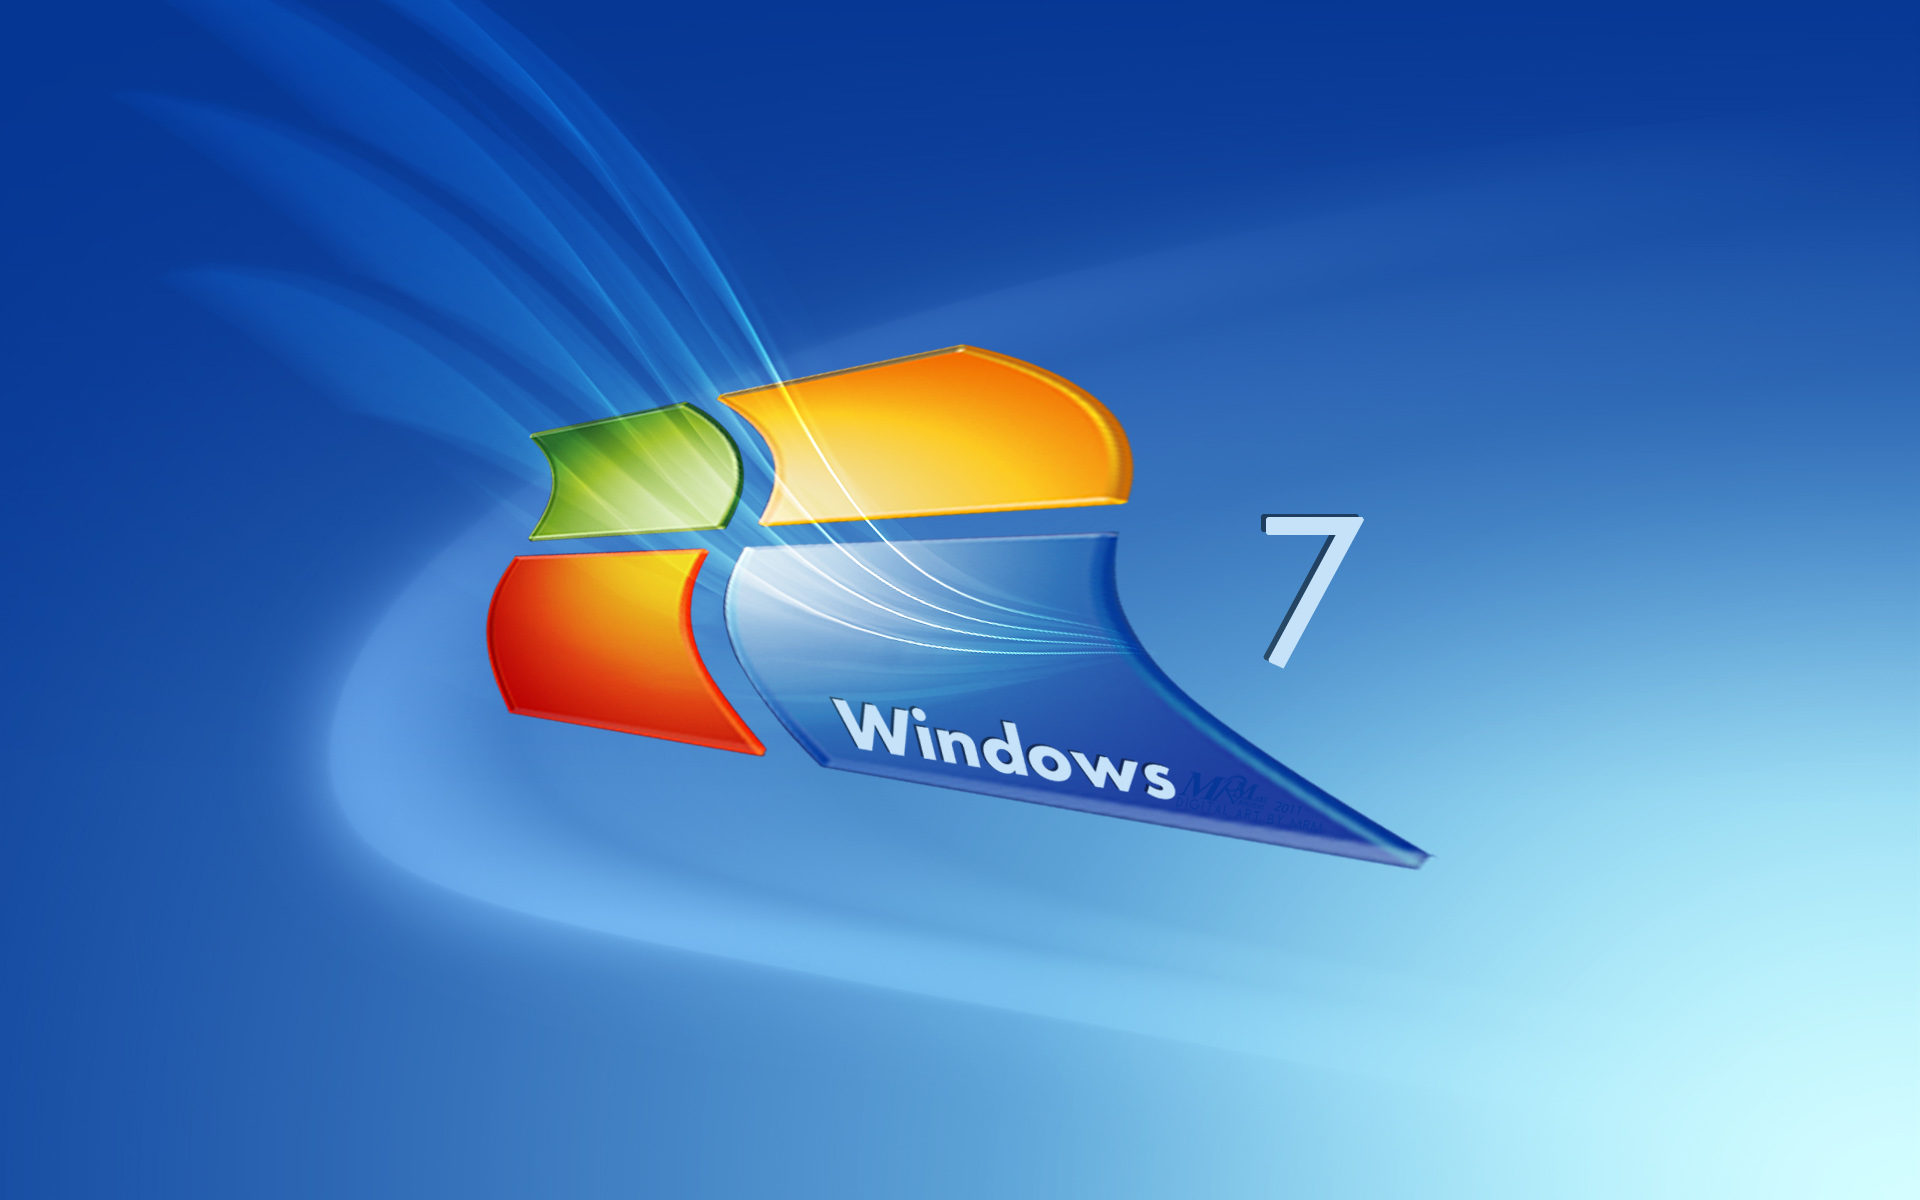 HD Wallpapers for Windows 7 1920x1200